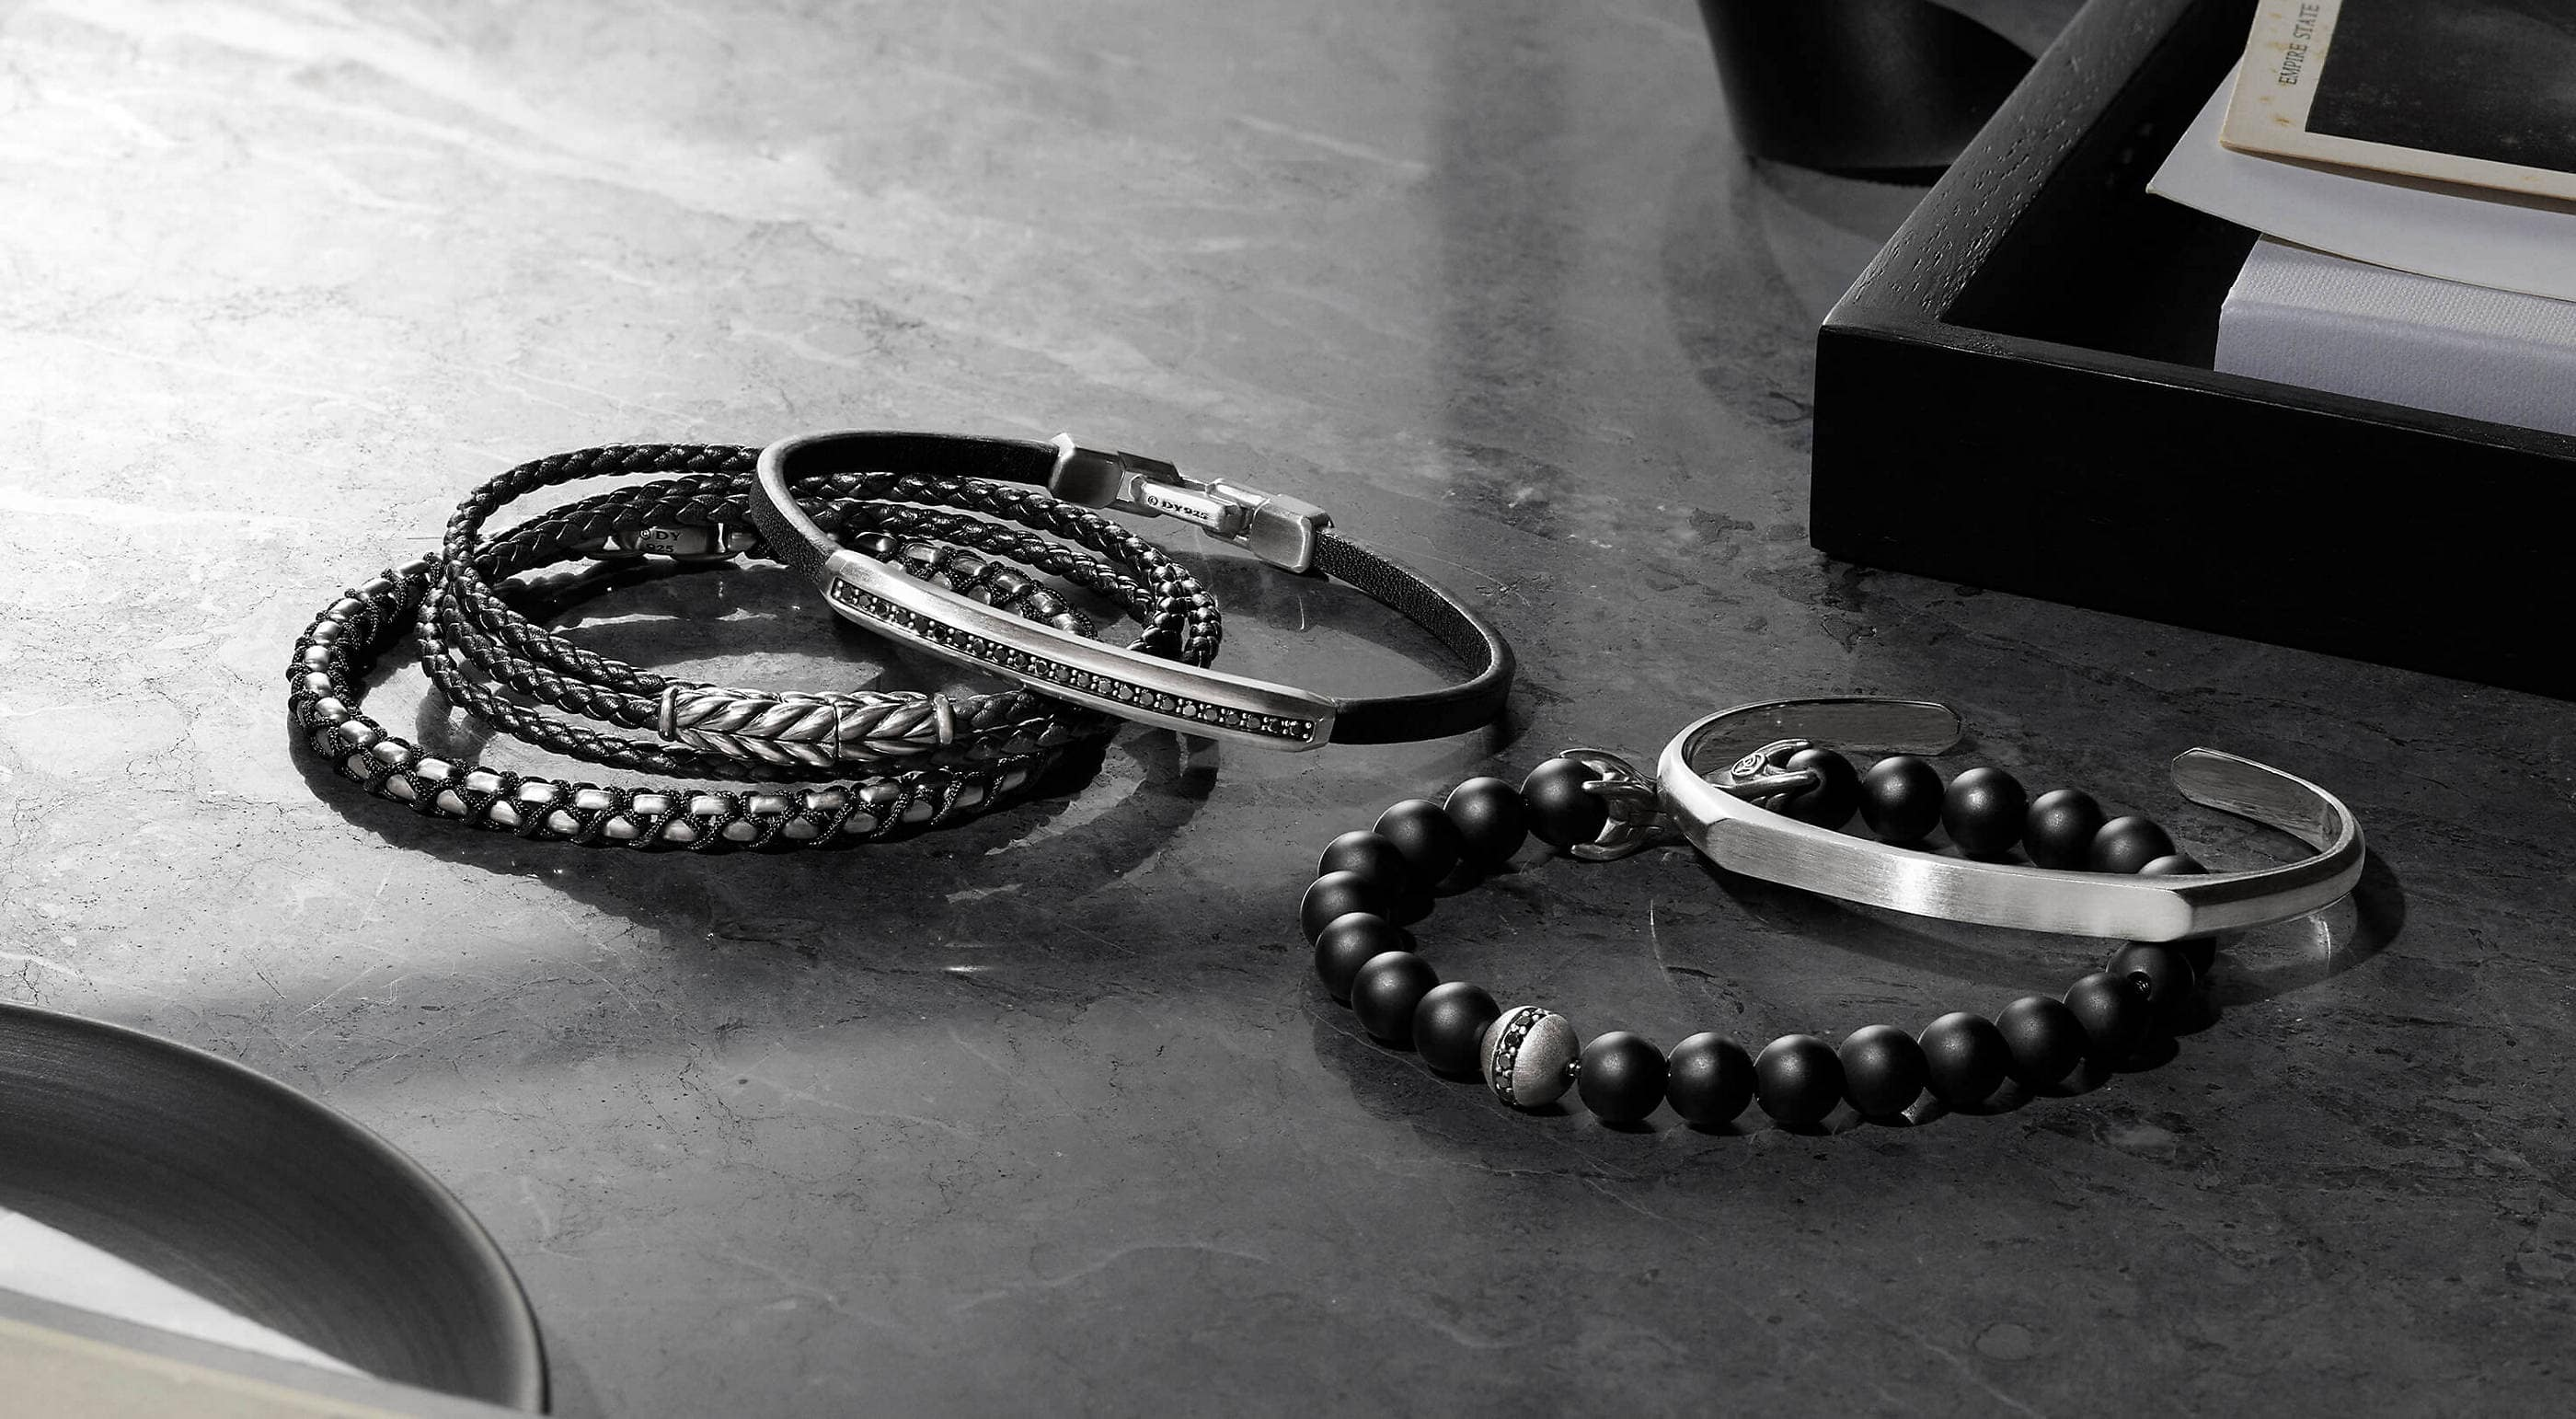 A color photo shows five David Yurman men's bracelets scattered on a grey marble surface in between a black tray and dish holding white papers and black-and-white postcards. The jewelry is crafted from sterling silver. One bracelet is woven with black nylon, two bracelets feature braided black leather and one bracelet is crafted from black onyx beads with black diamond accents.